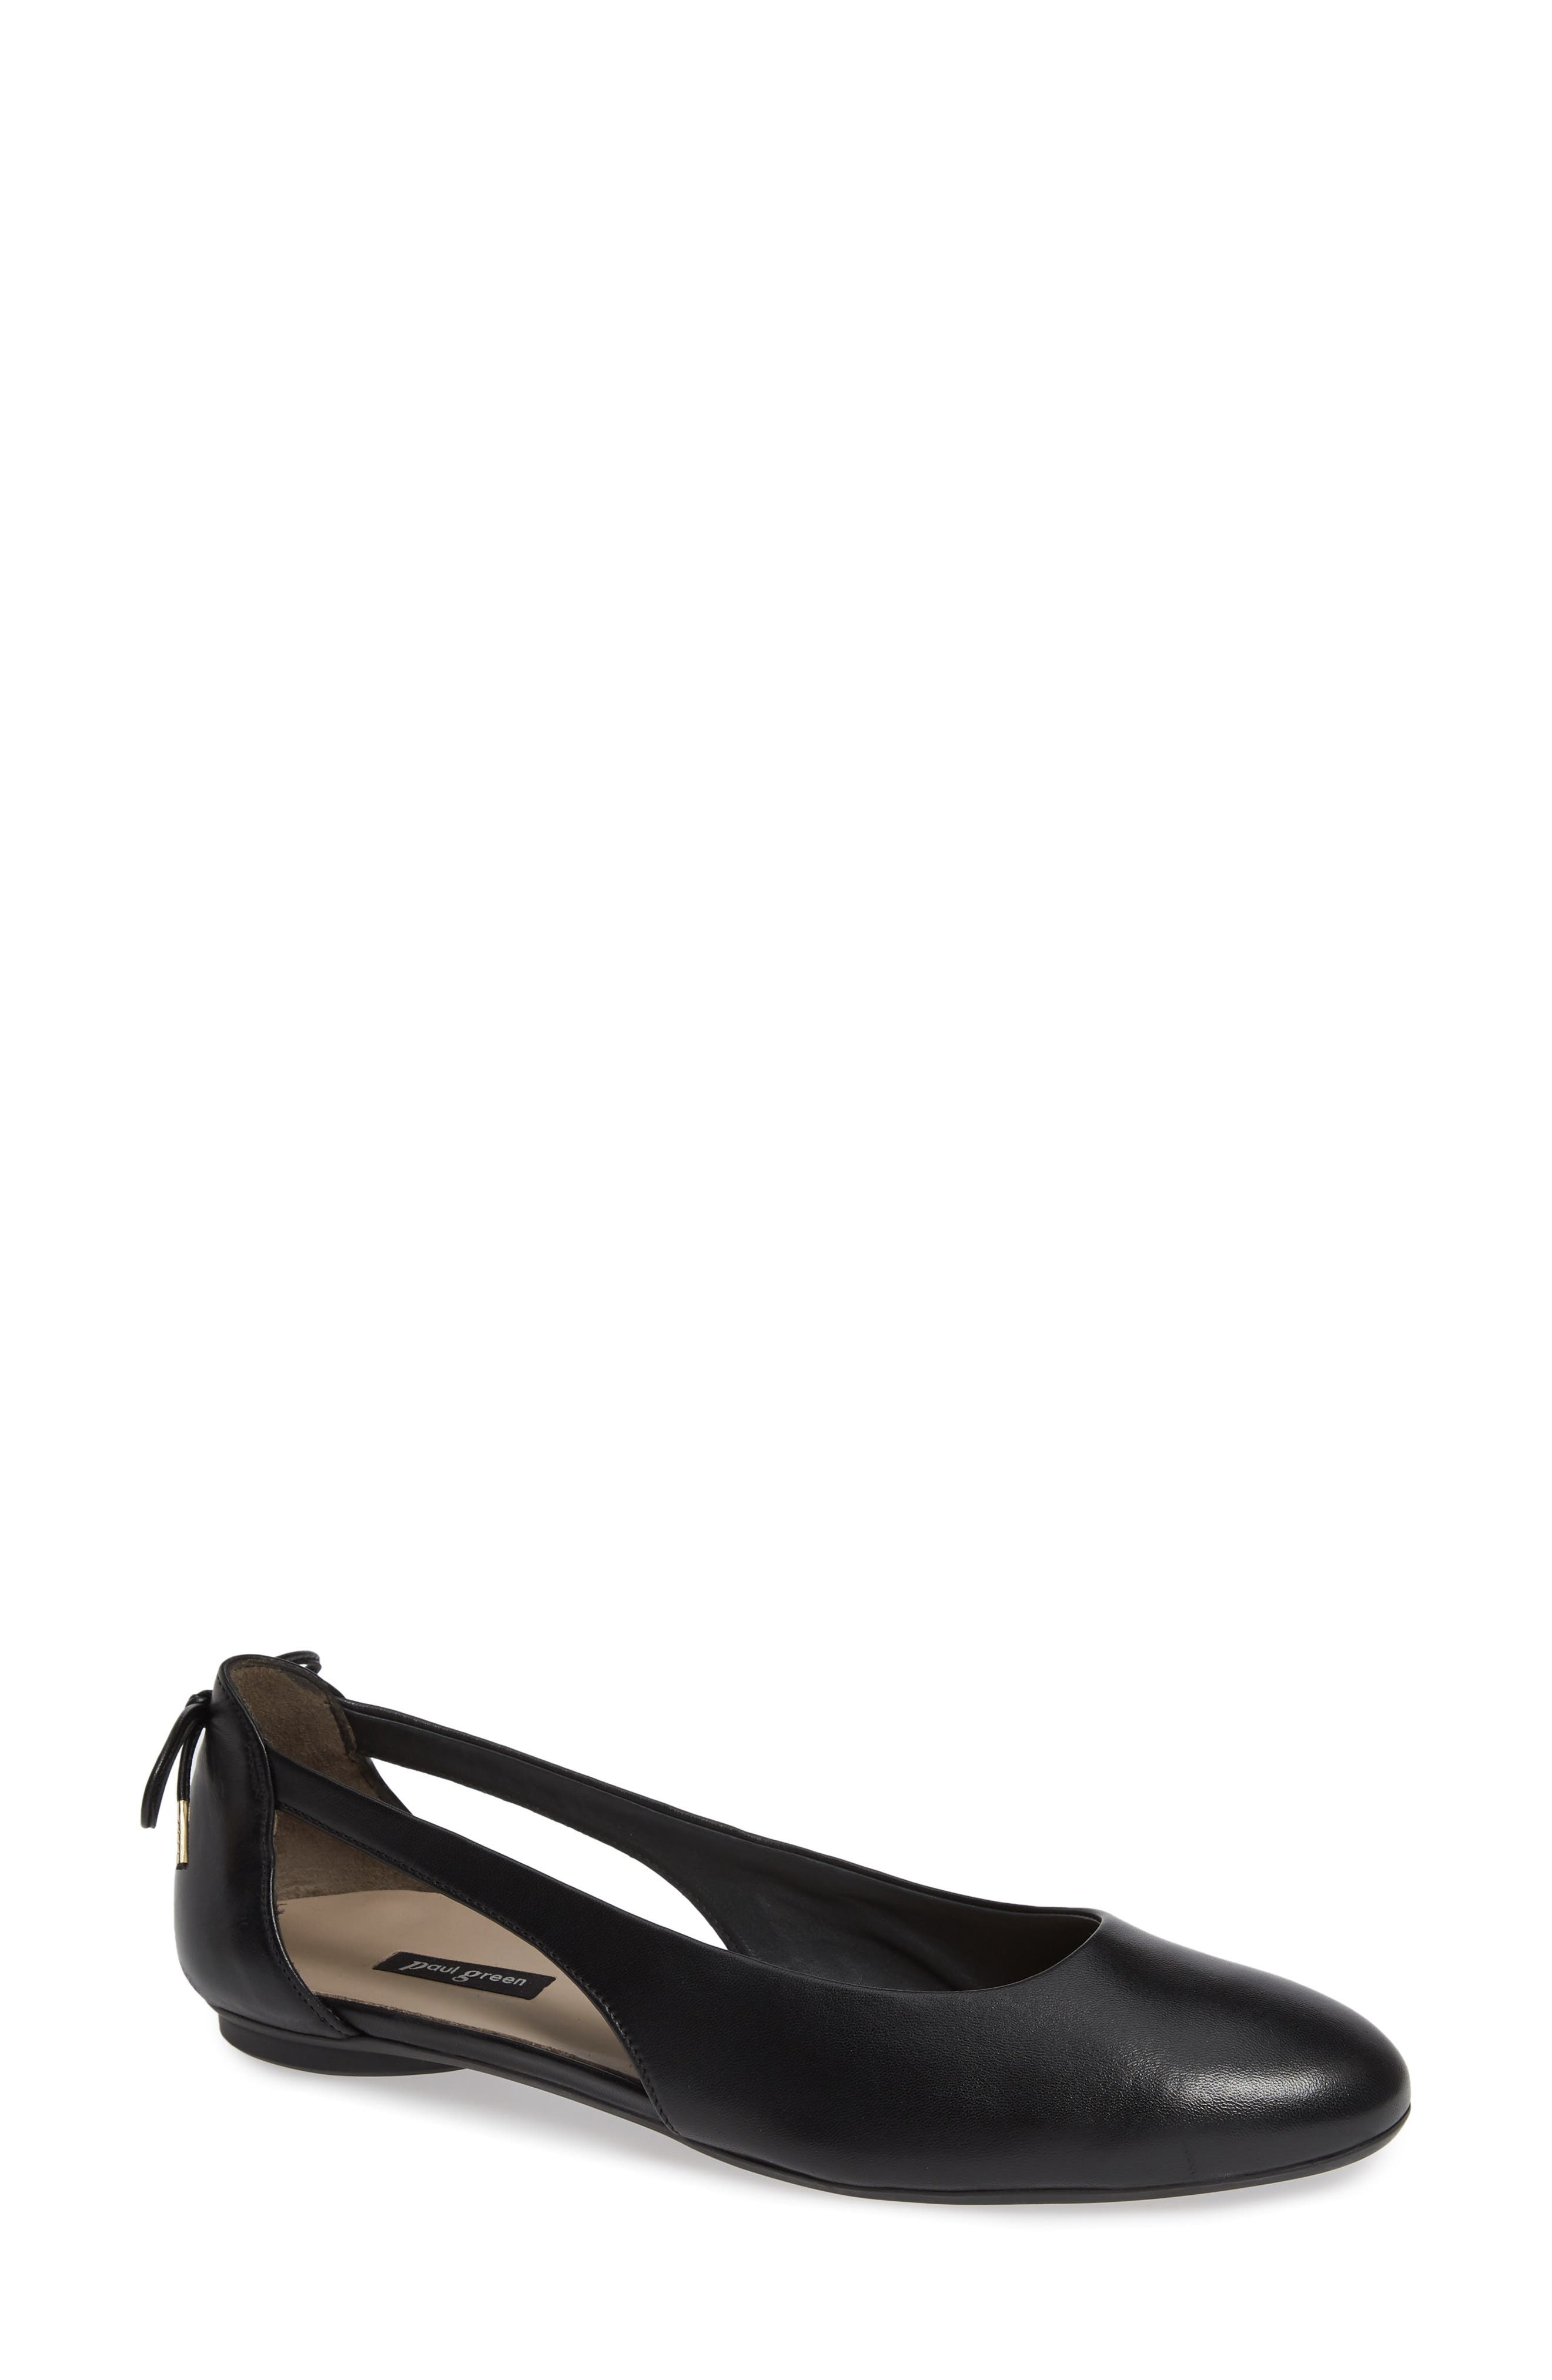 Maureen Cutout Flat,                         Main,                         color, BLACK LEATHER